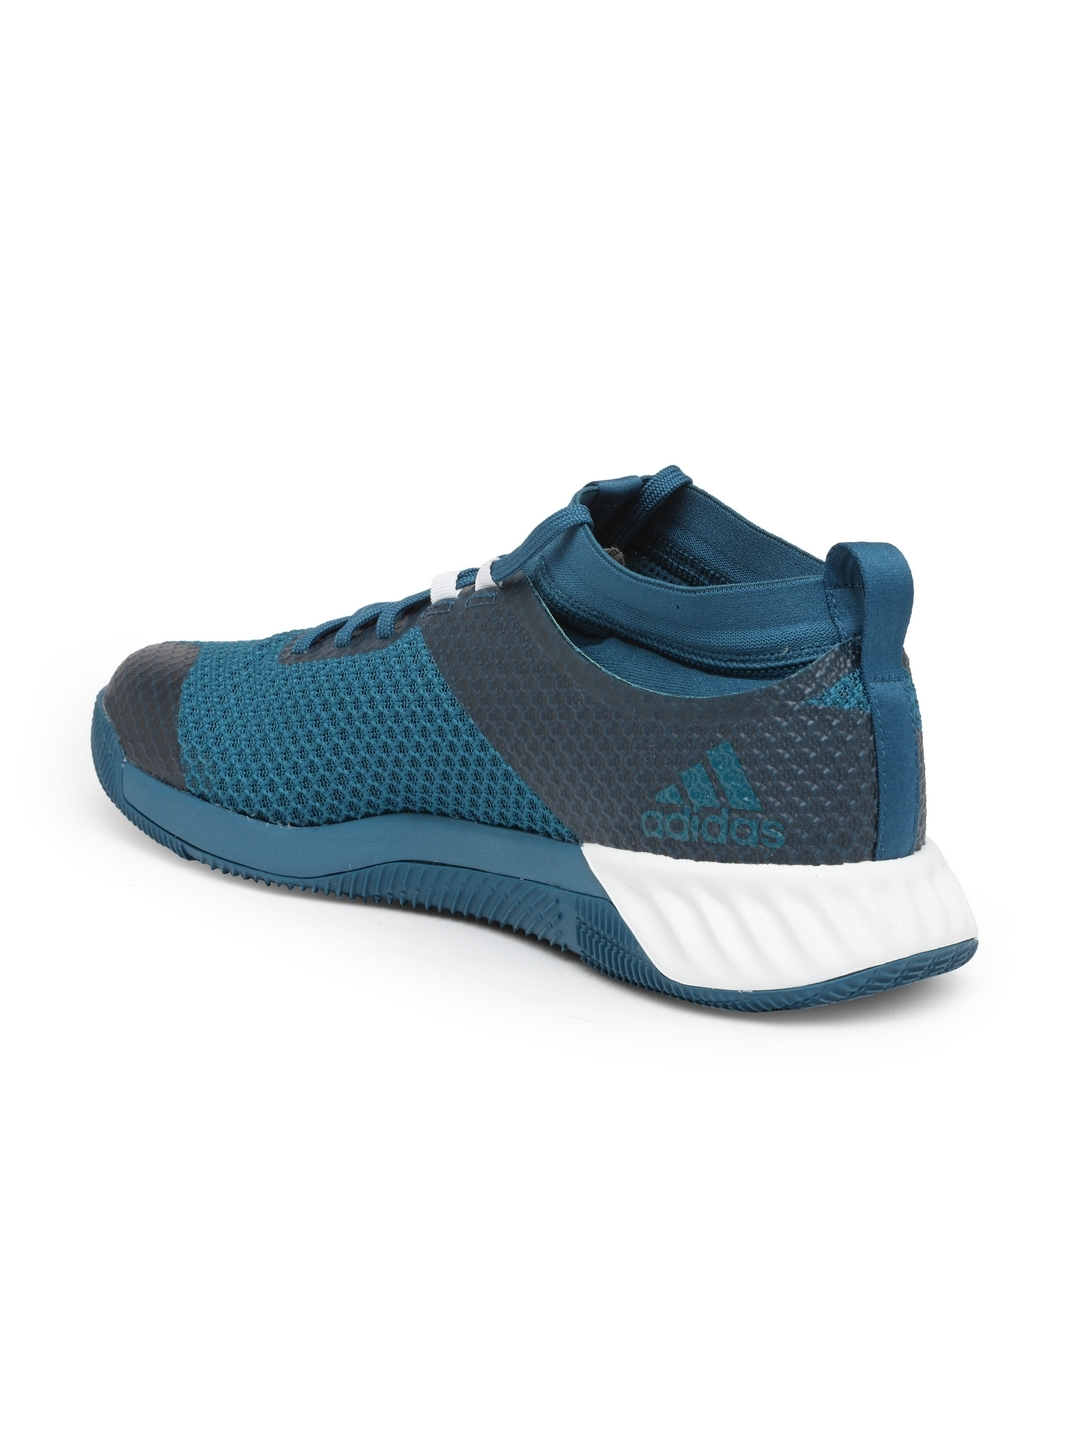 newest collection c6ac9 96d97 ADIDAS Men Teal Green Crazytrain PRO 3.0 Training Shoes